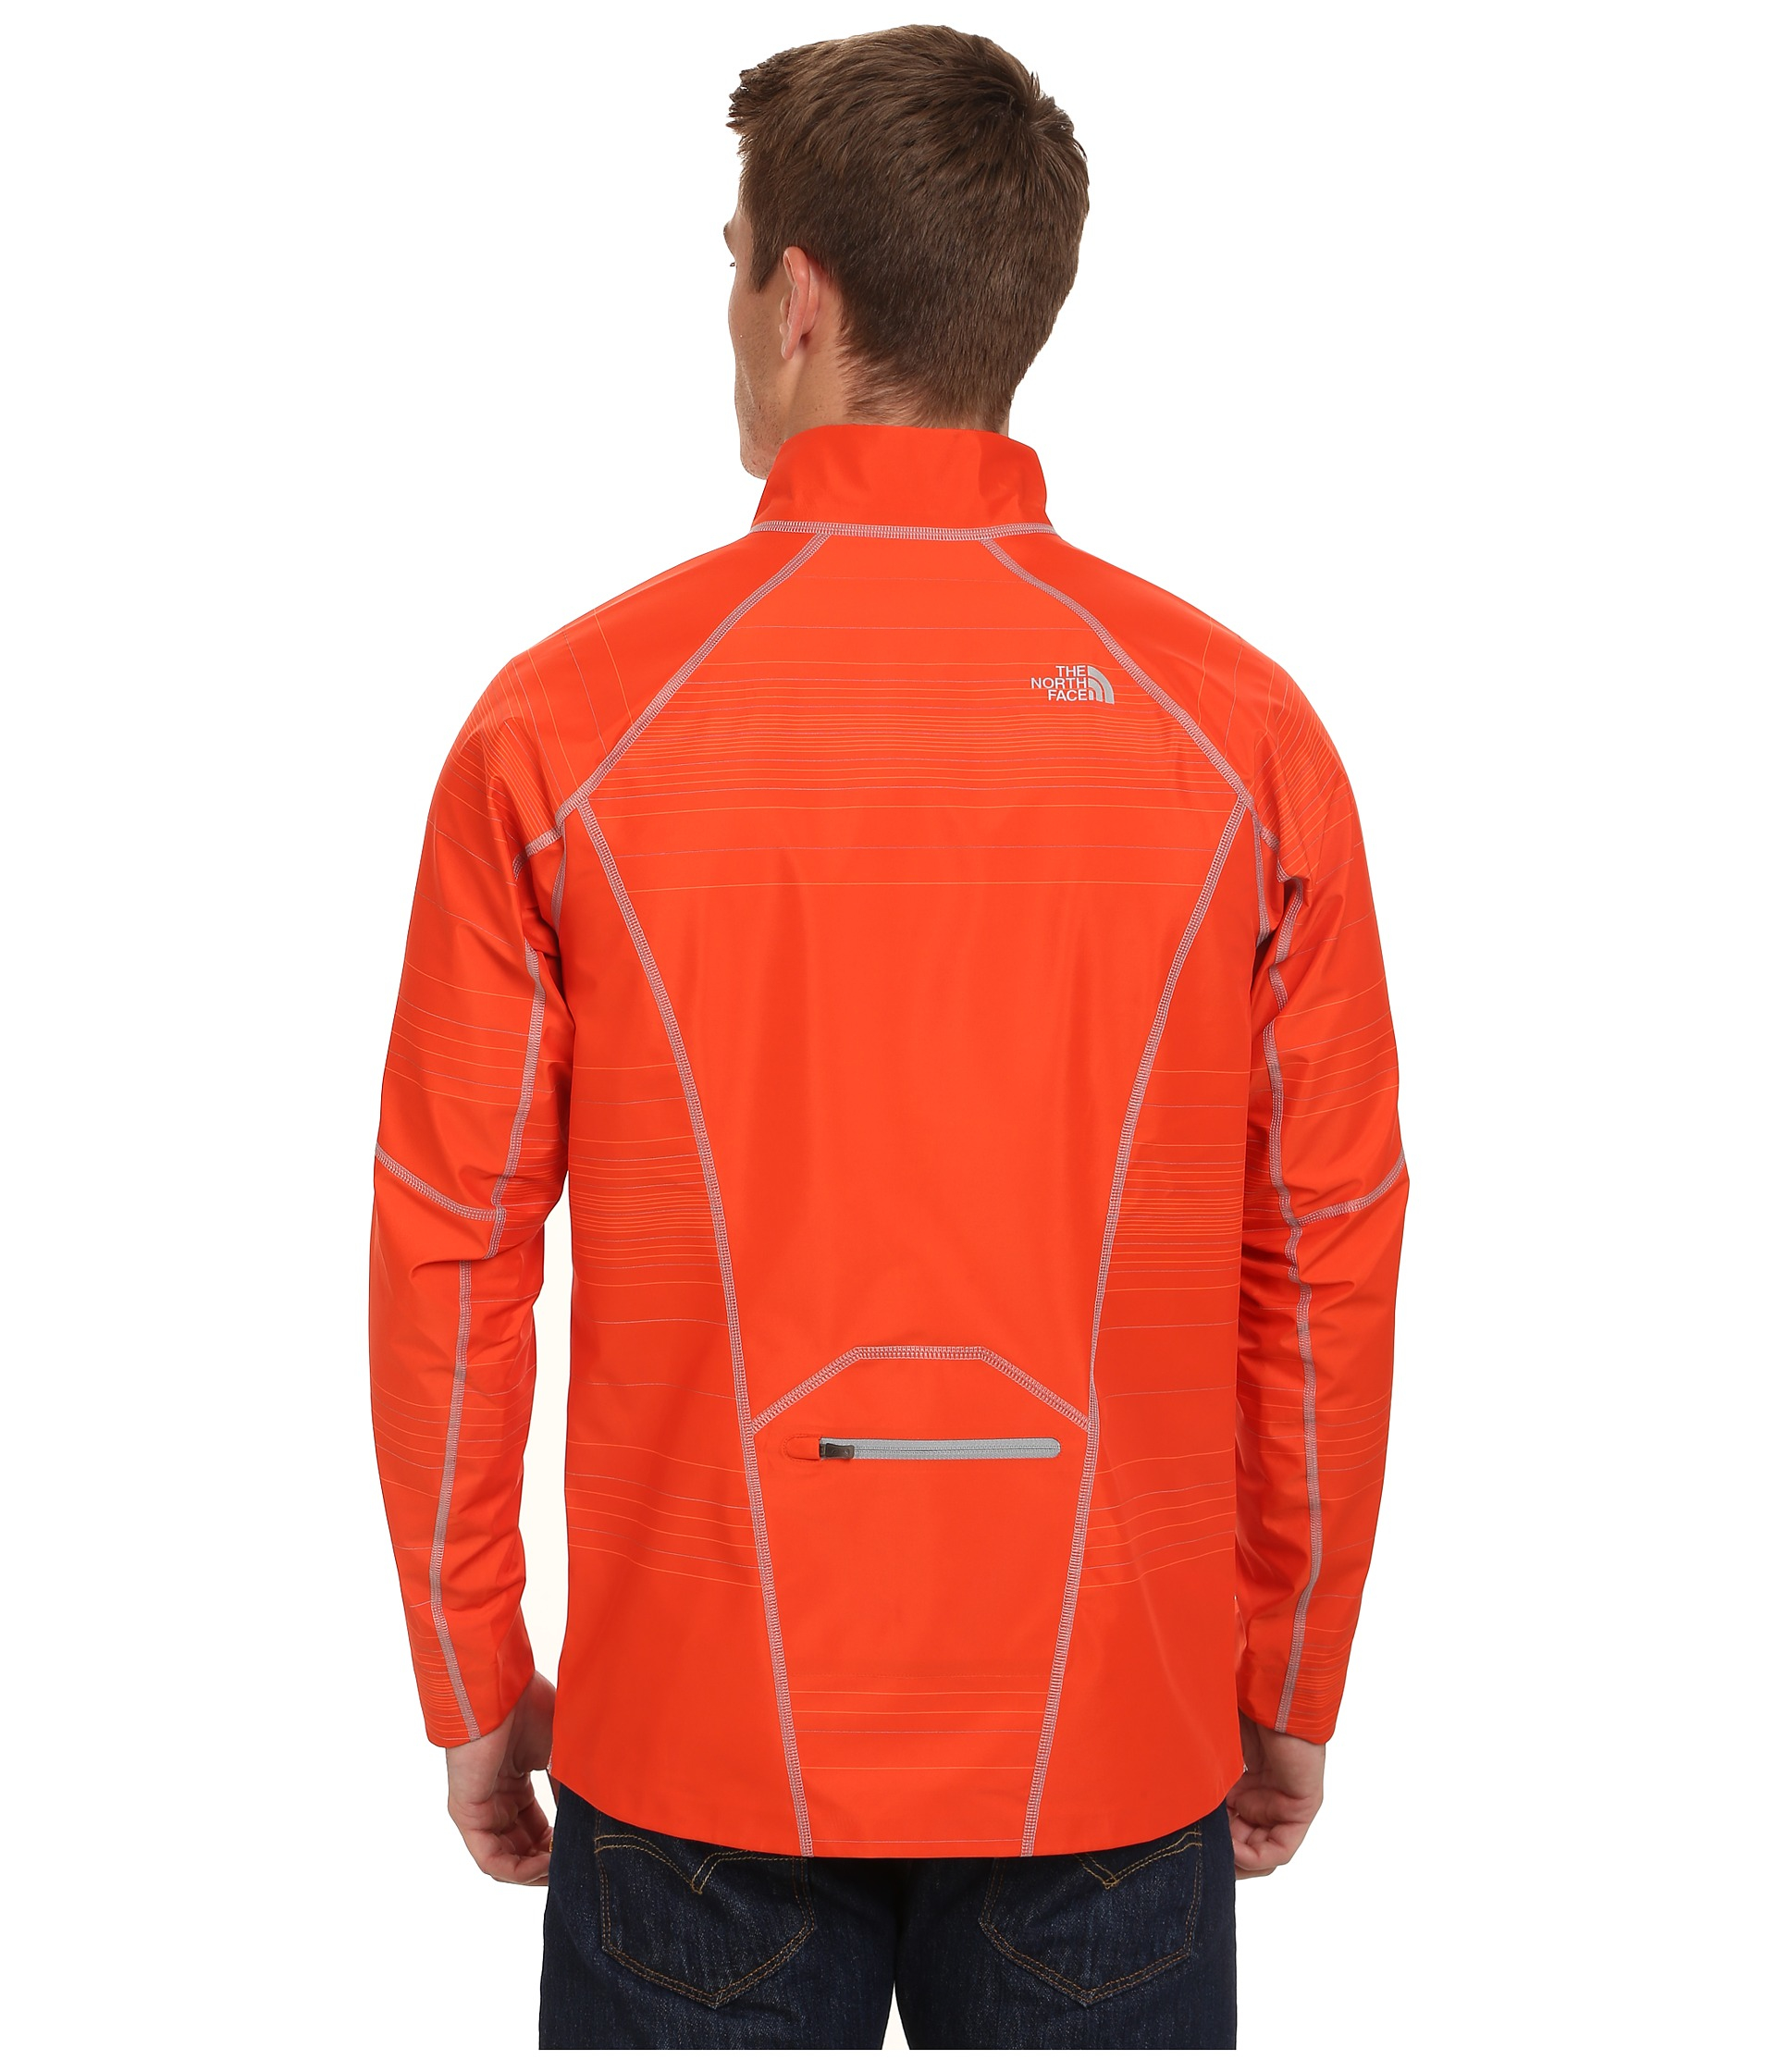 870adae8e030 Lyst - The North Face Illuminated Reversible Jacket in Orange for Men